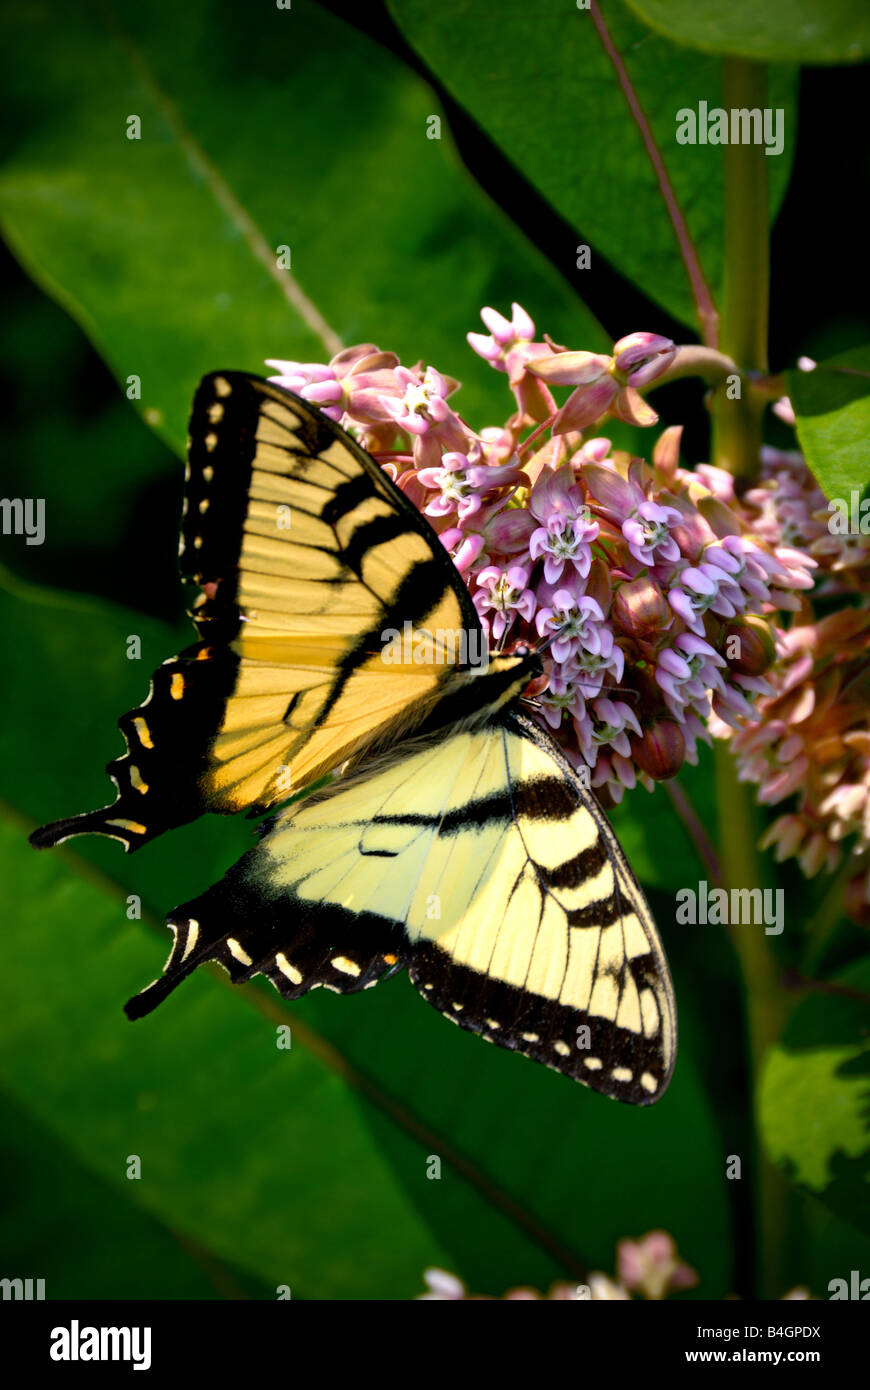 A yellow swallowtail butterfly on a pink flower - Stock Image